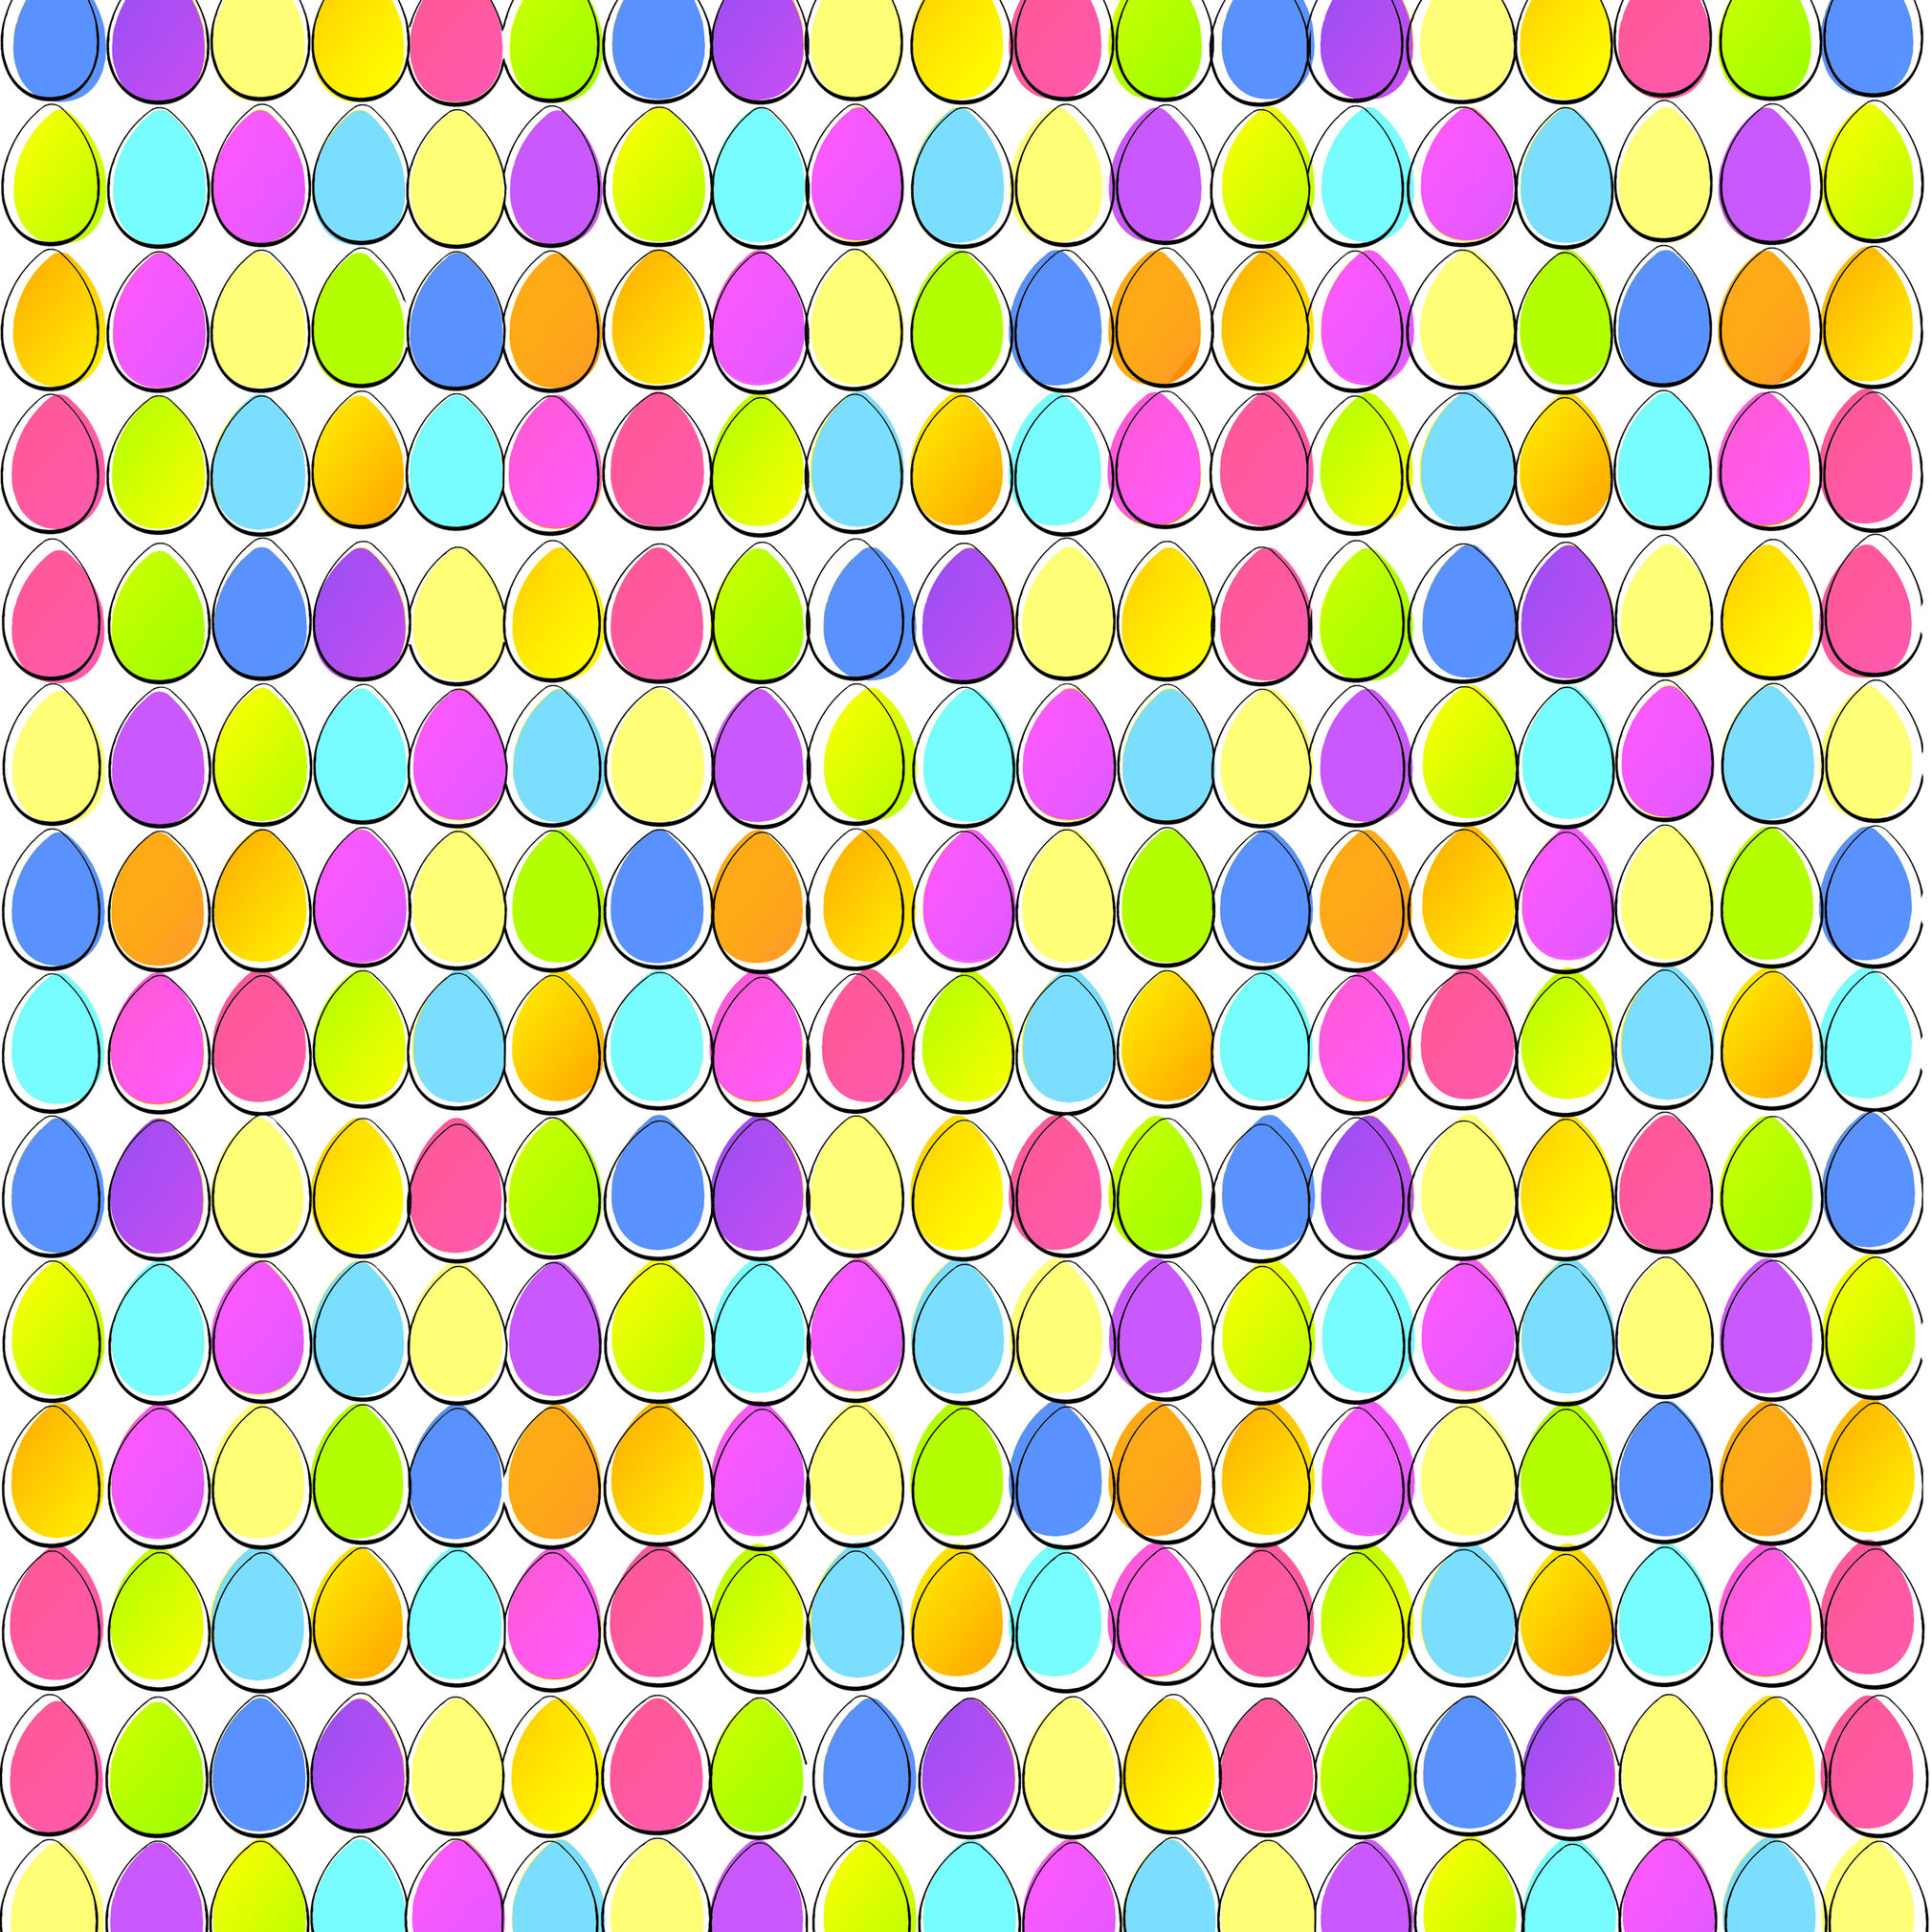 eggs_by_the_yards fabric by ludditepress on Spoonflower - custom fabric